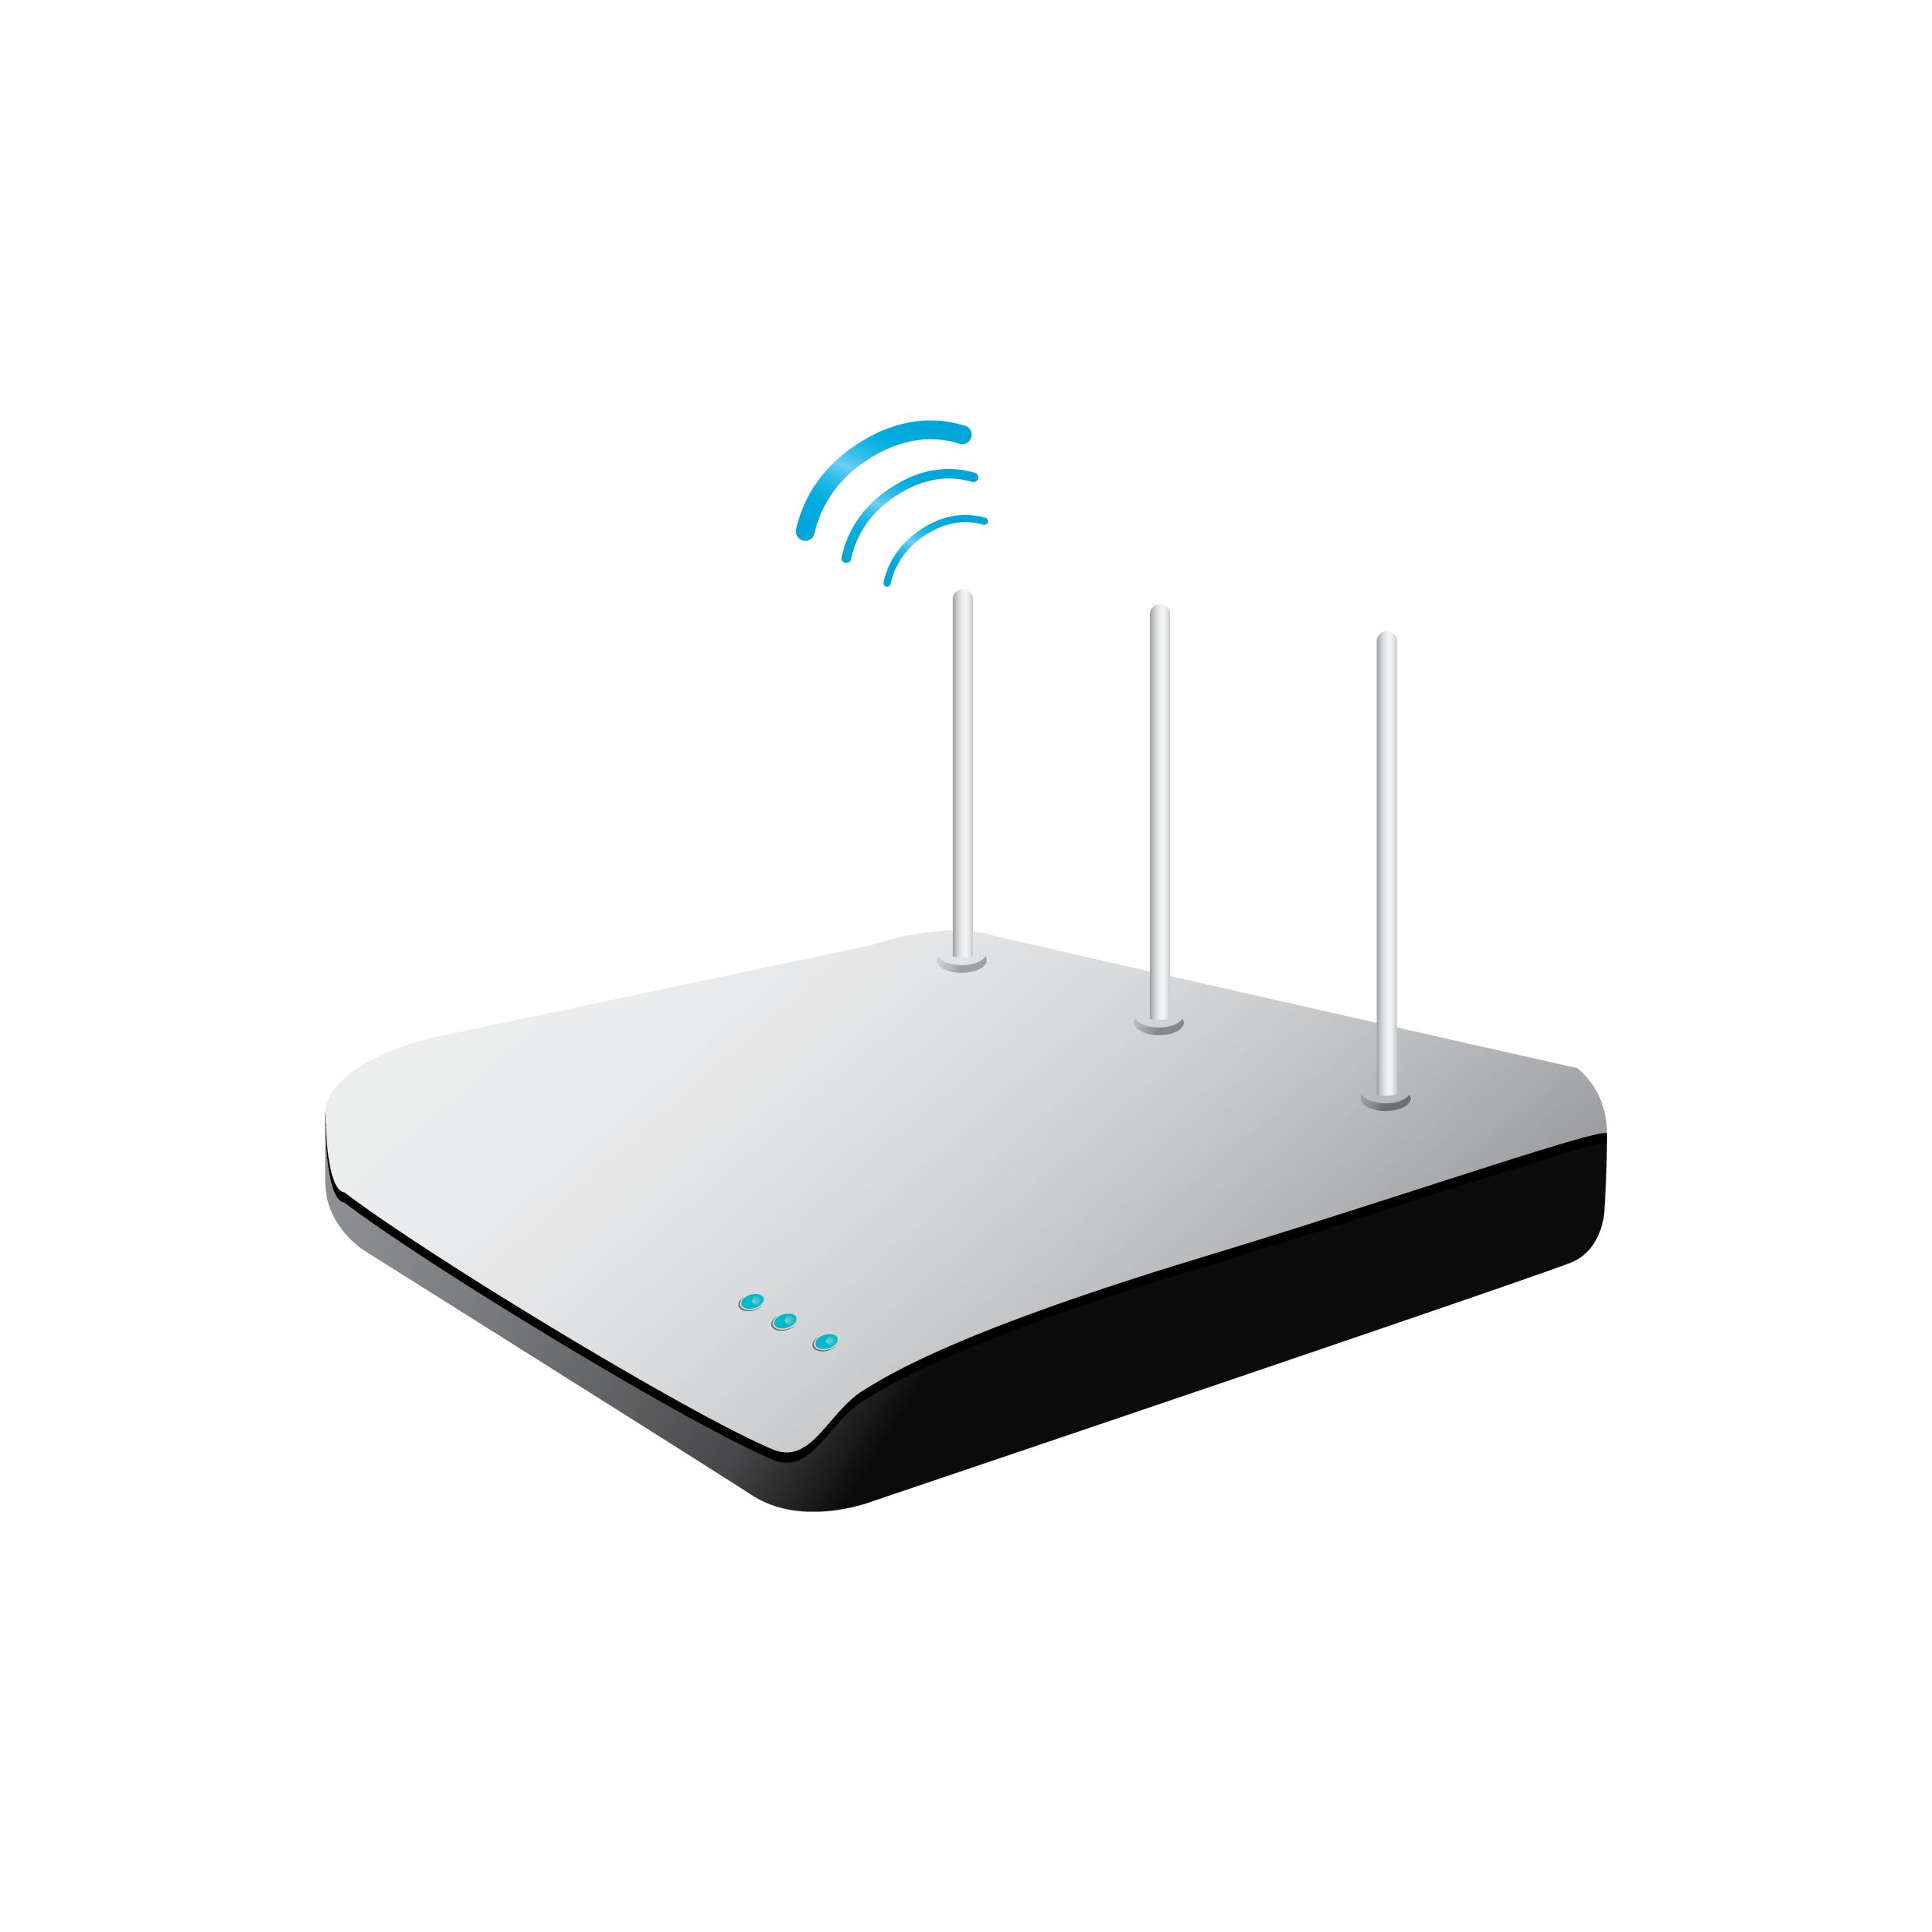 Upgrade your Wireless Router's Firmware